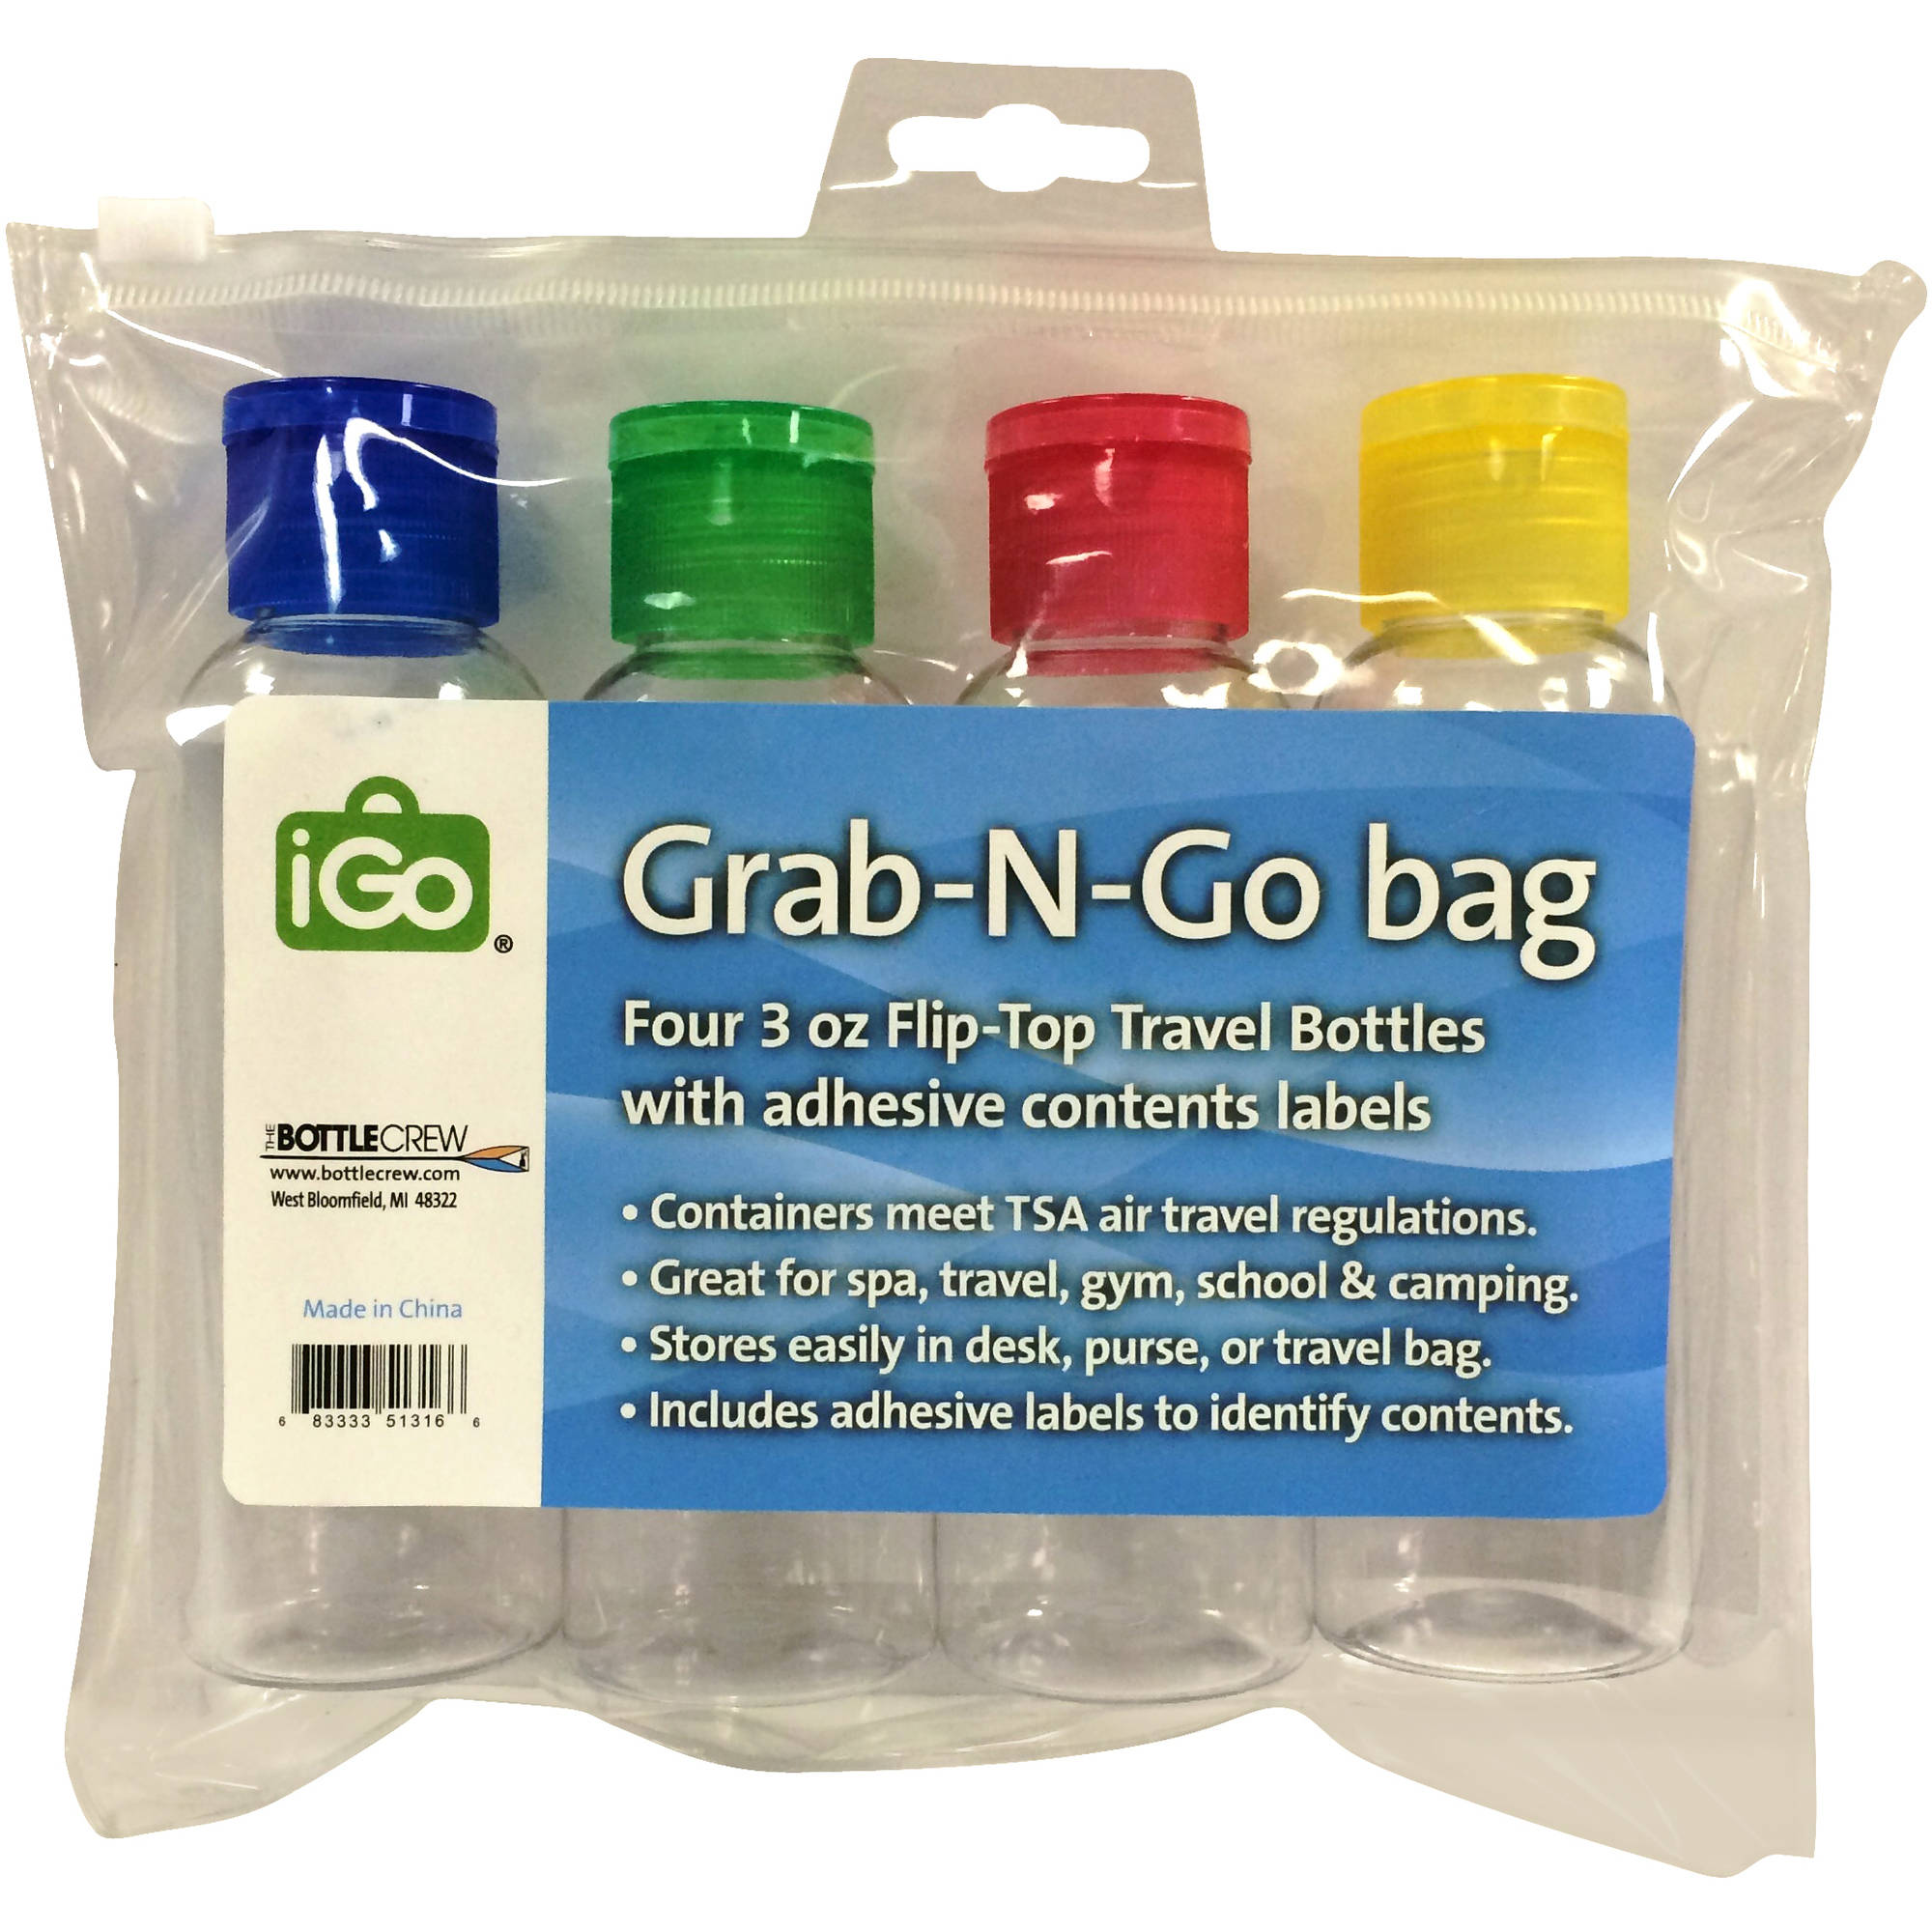 iGo Grab-N-Go Travel Bottles, 3 oz, 4 count